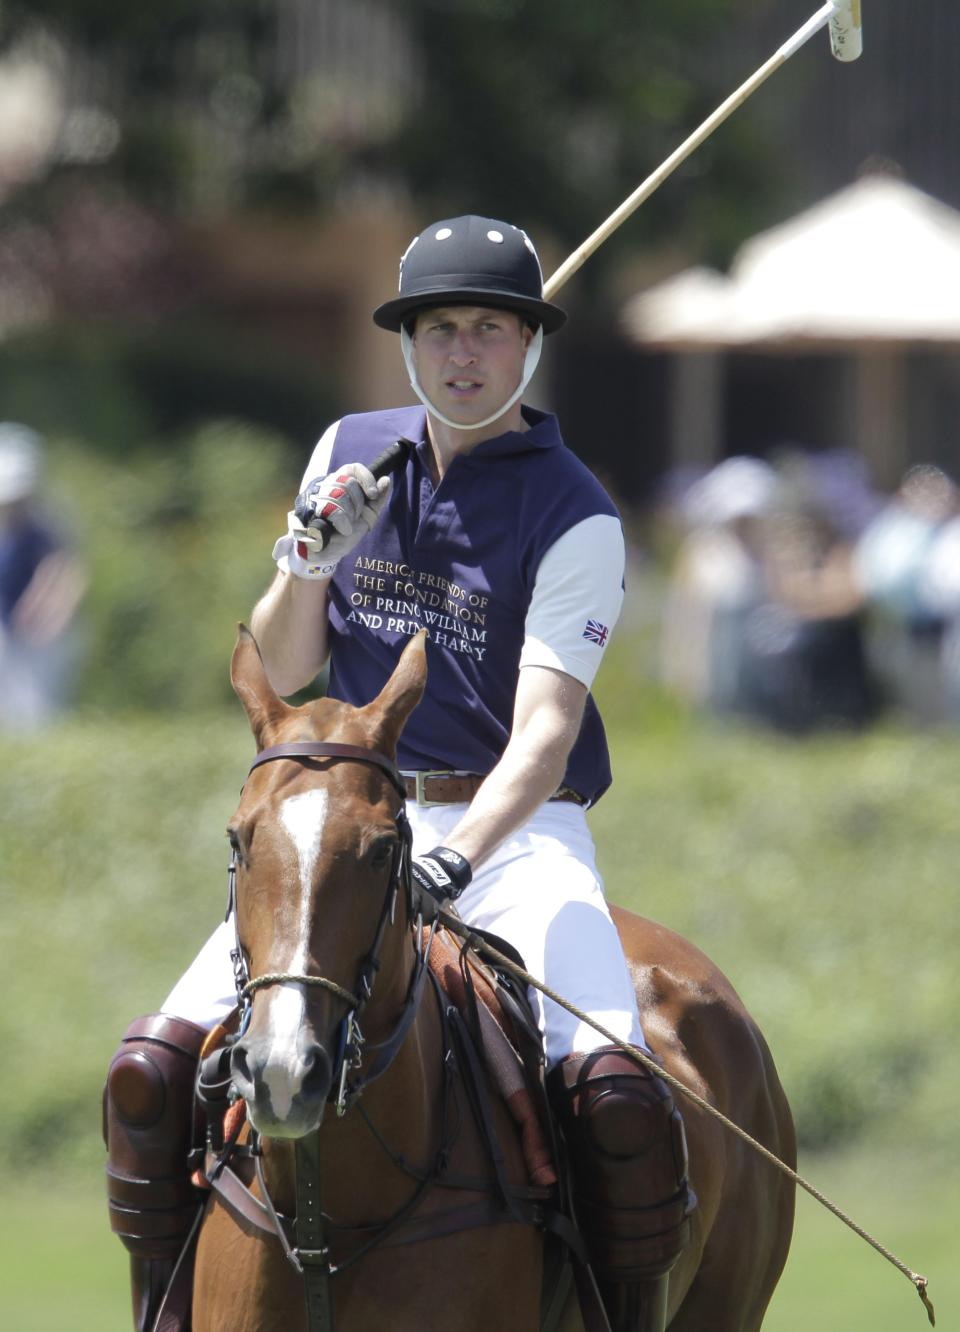 Prince William, Duke of Cambridge is shown prior to the start of the charity polo match at The Santa Barbara Polo & Racquet club on Saturday, July 9, 2011 in Carpinteria Calif.  The event is held in support of The American Friends of The Foundation of Prince William and Prince Harry. (AP Photo/Jae Hong)